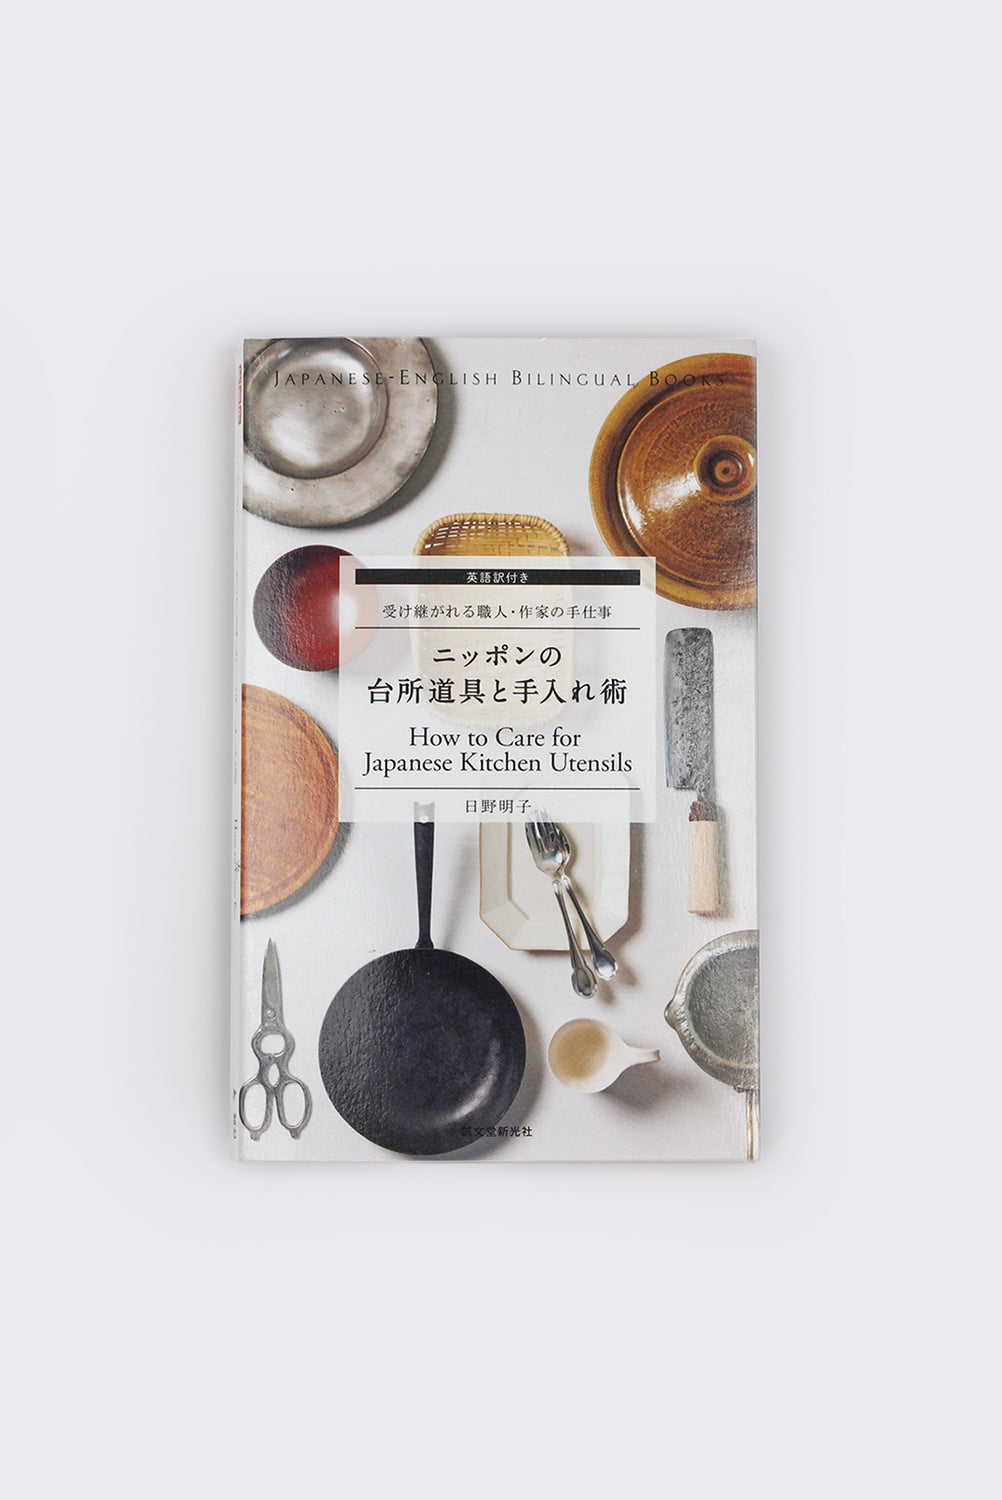 How to Care for Japanese Cooking Utensils